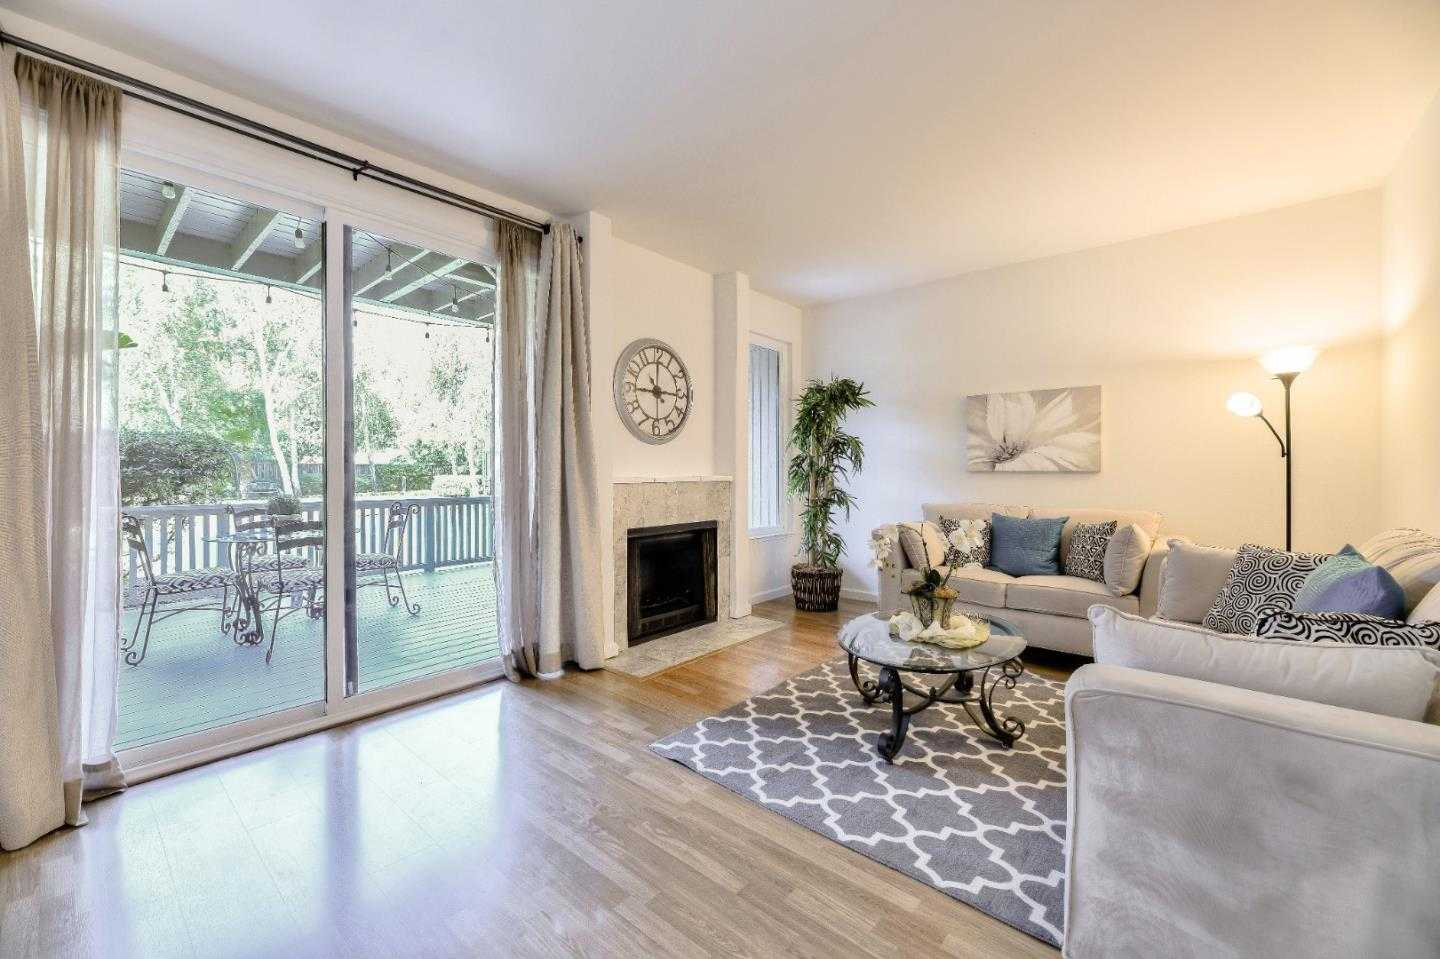 $1,299,000 - 3Br/2Ba -  for Sale in Mountain View